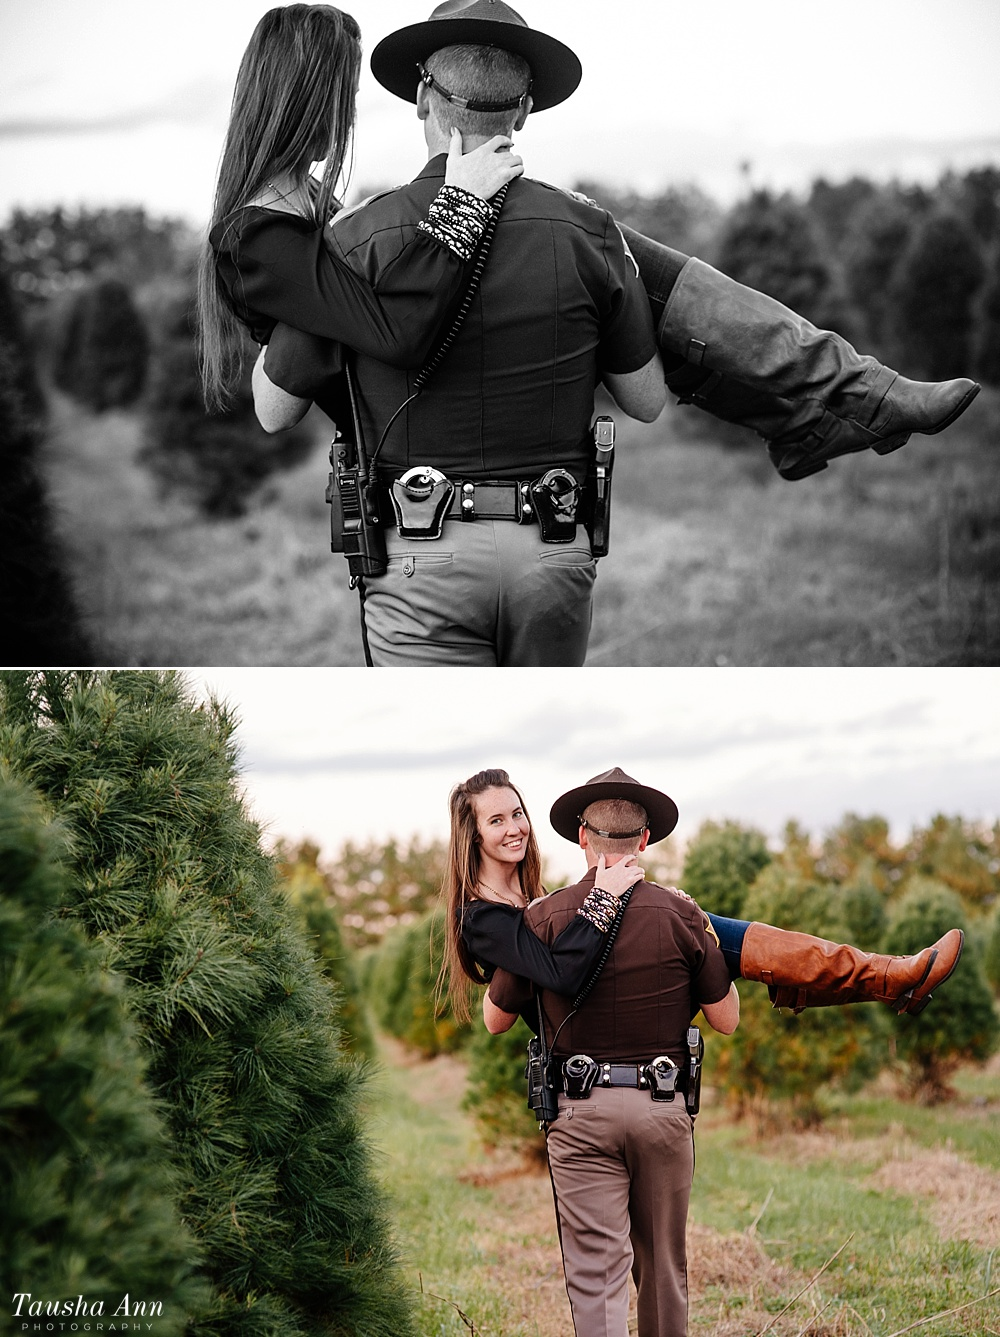 Surprise Proposal at Country Cove Christmas Tree Farm. Police officer surprise proposal at Sunset. Police Officer / Man carrying girl in between Christmas Trees.